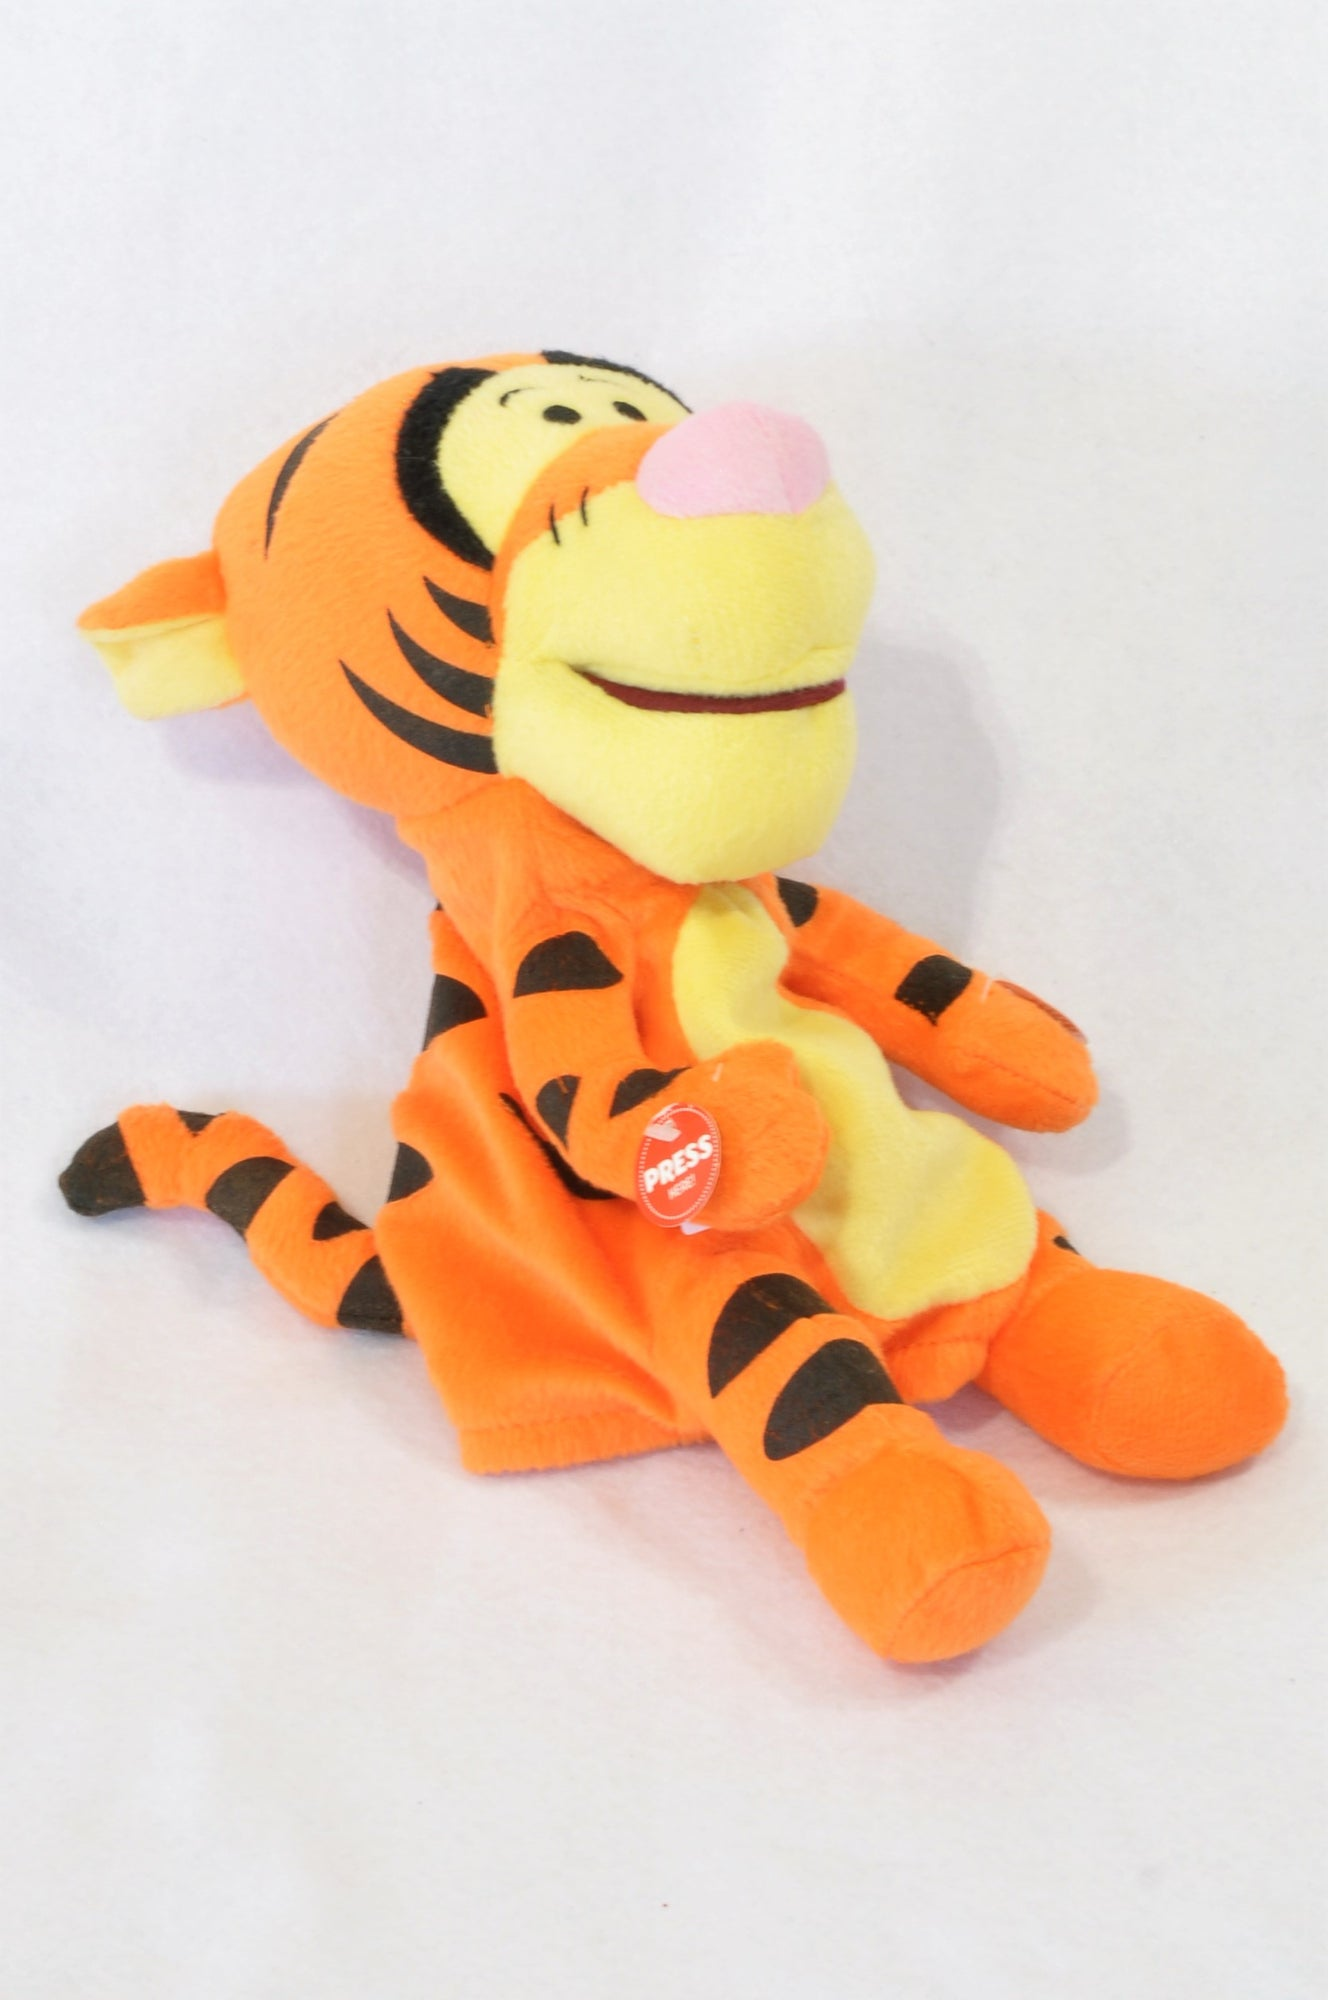 New Unbranded Orange Striped Hand Puppet Musical Tigger Toy Unisex 3-10 years